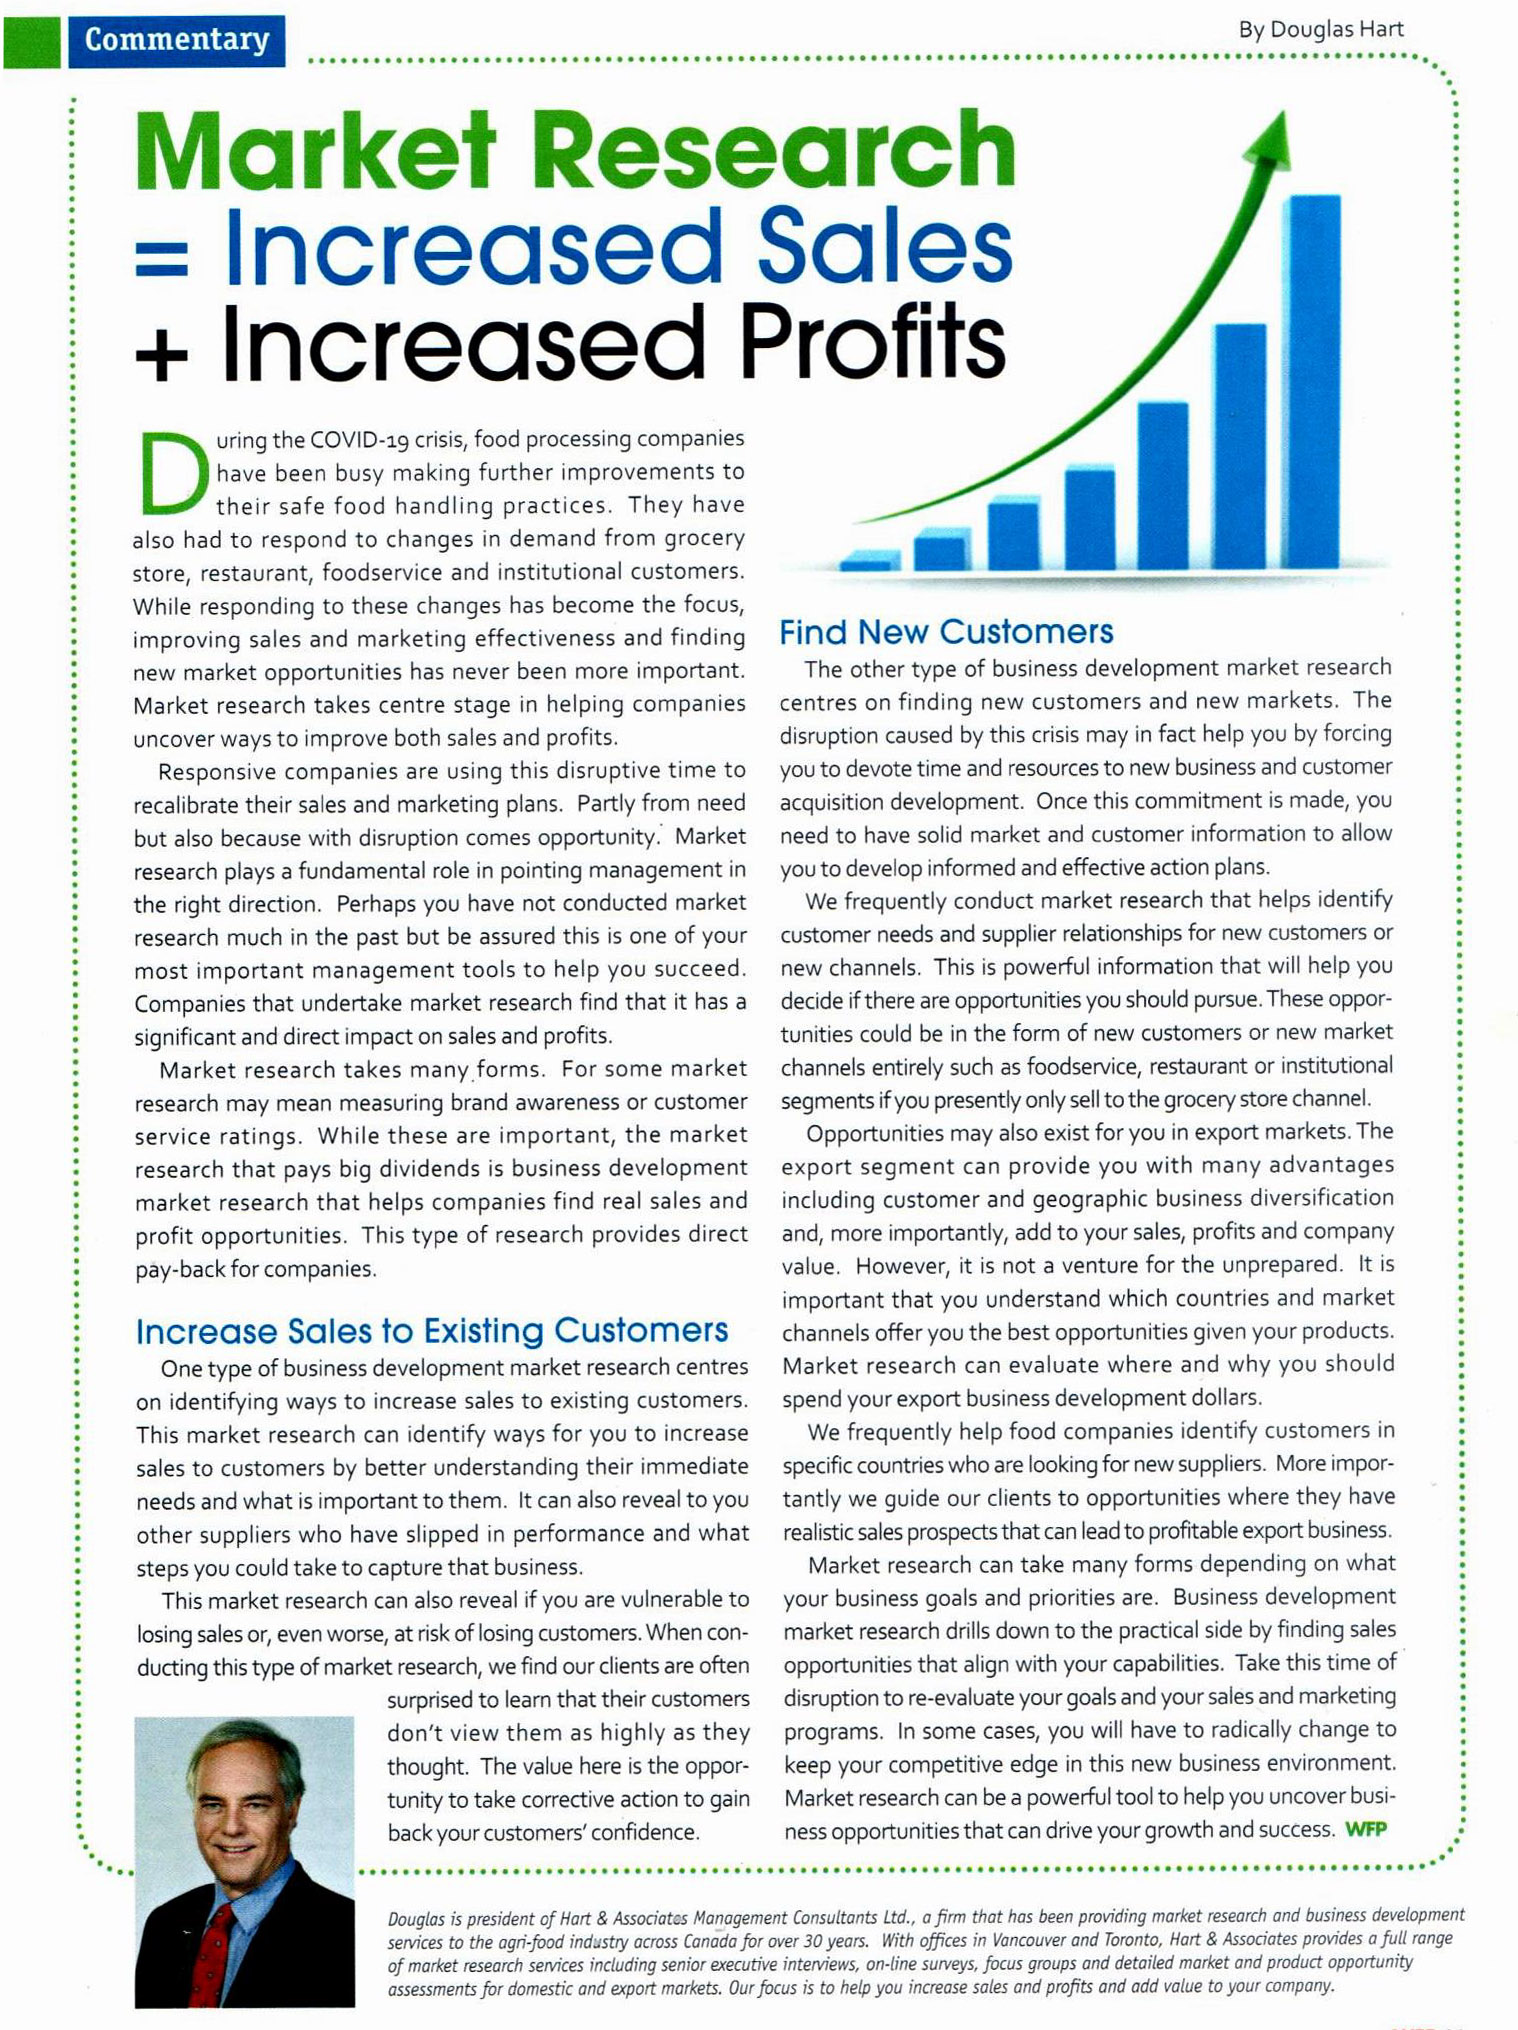 Market Research Equals Increased Profits